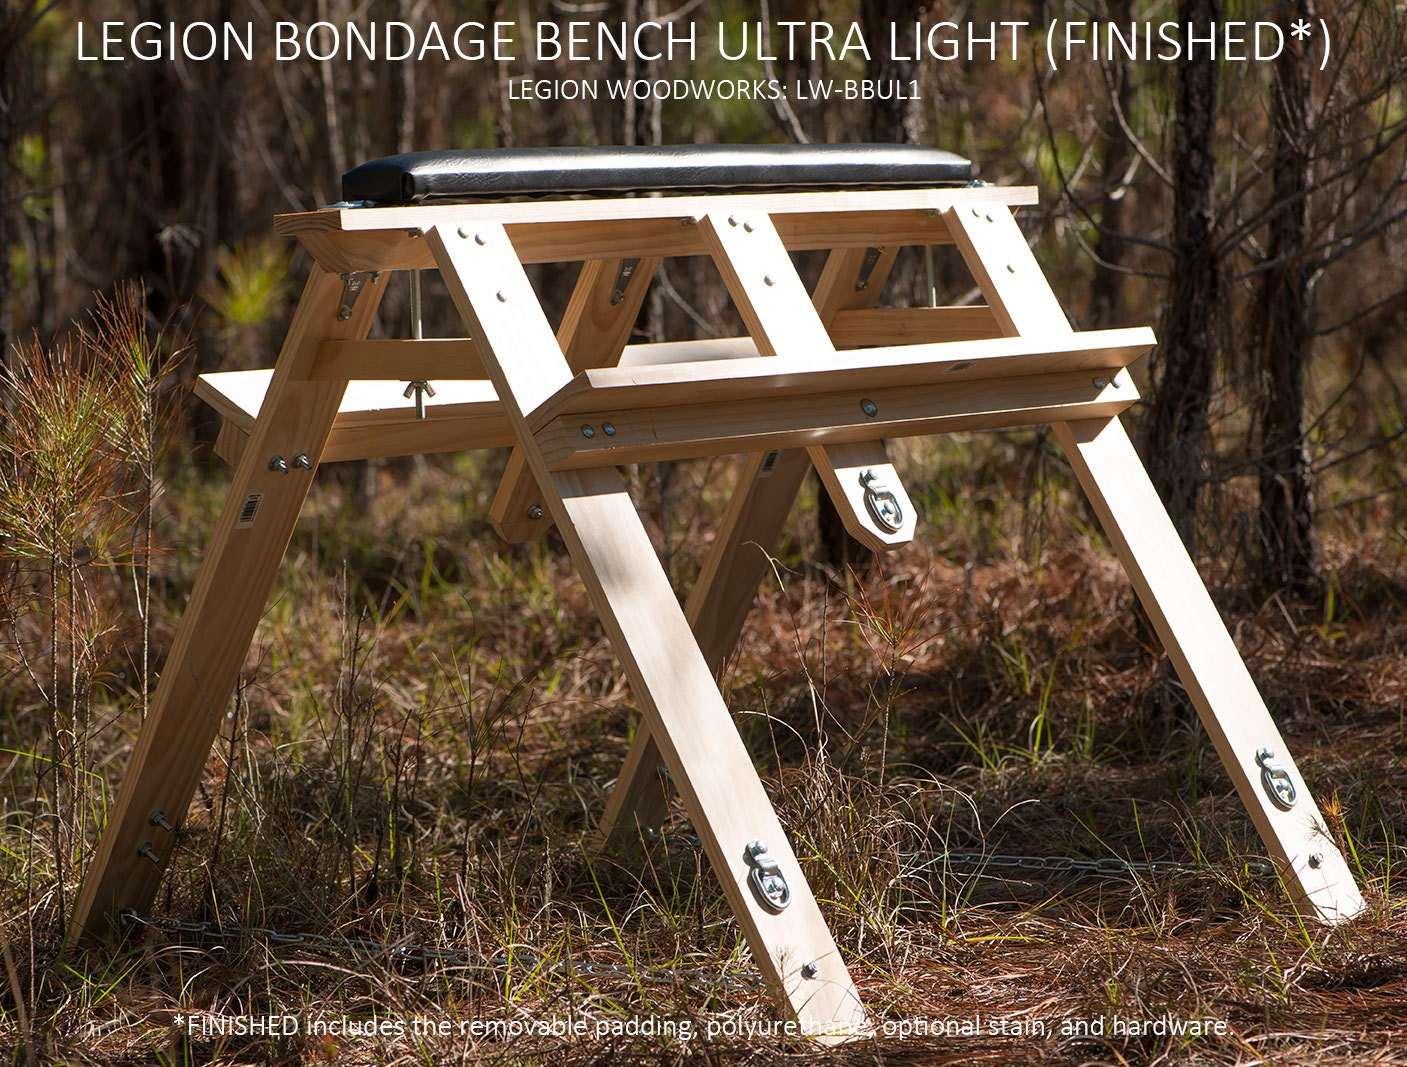 The Legion Ultra-Light Bondage Bench LW-BBUL1